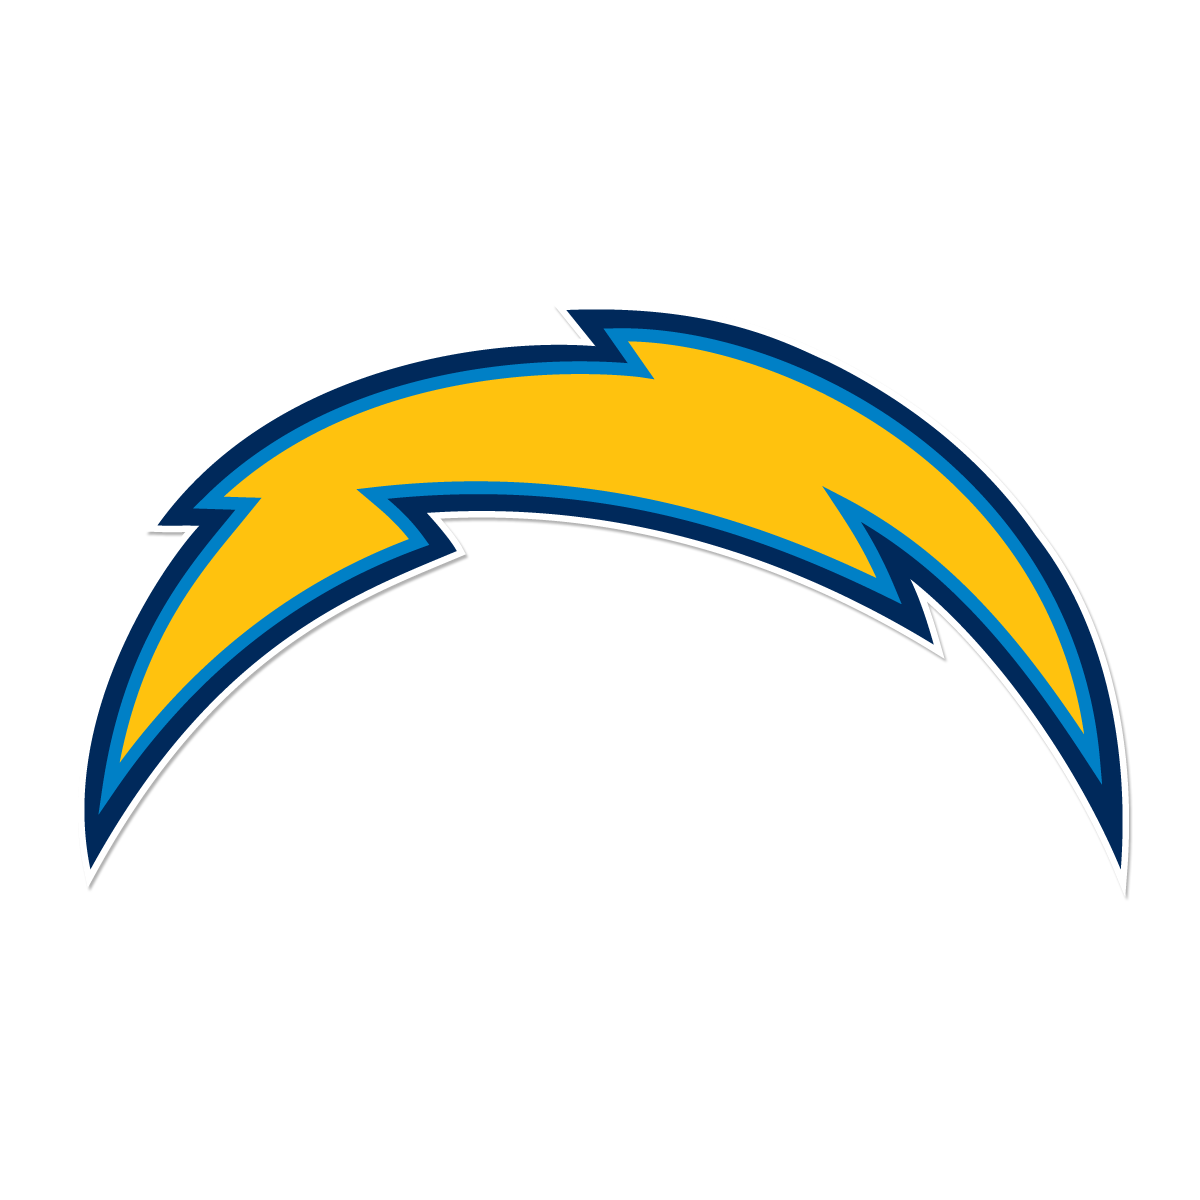 San Diego Chargers Bolt: Why Did Spanos Vote 'YES' On Raiders?